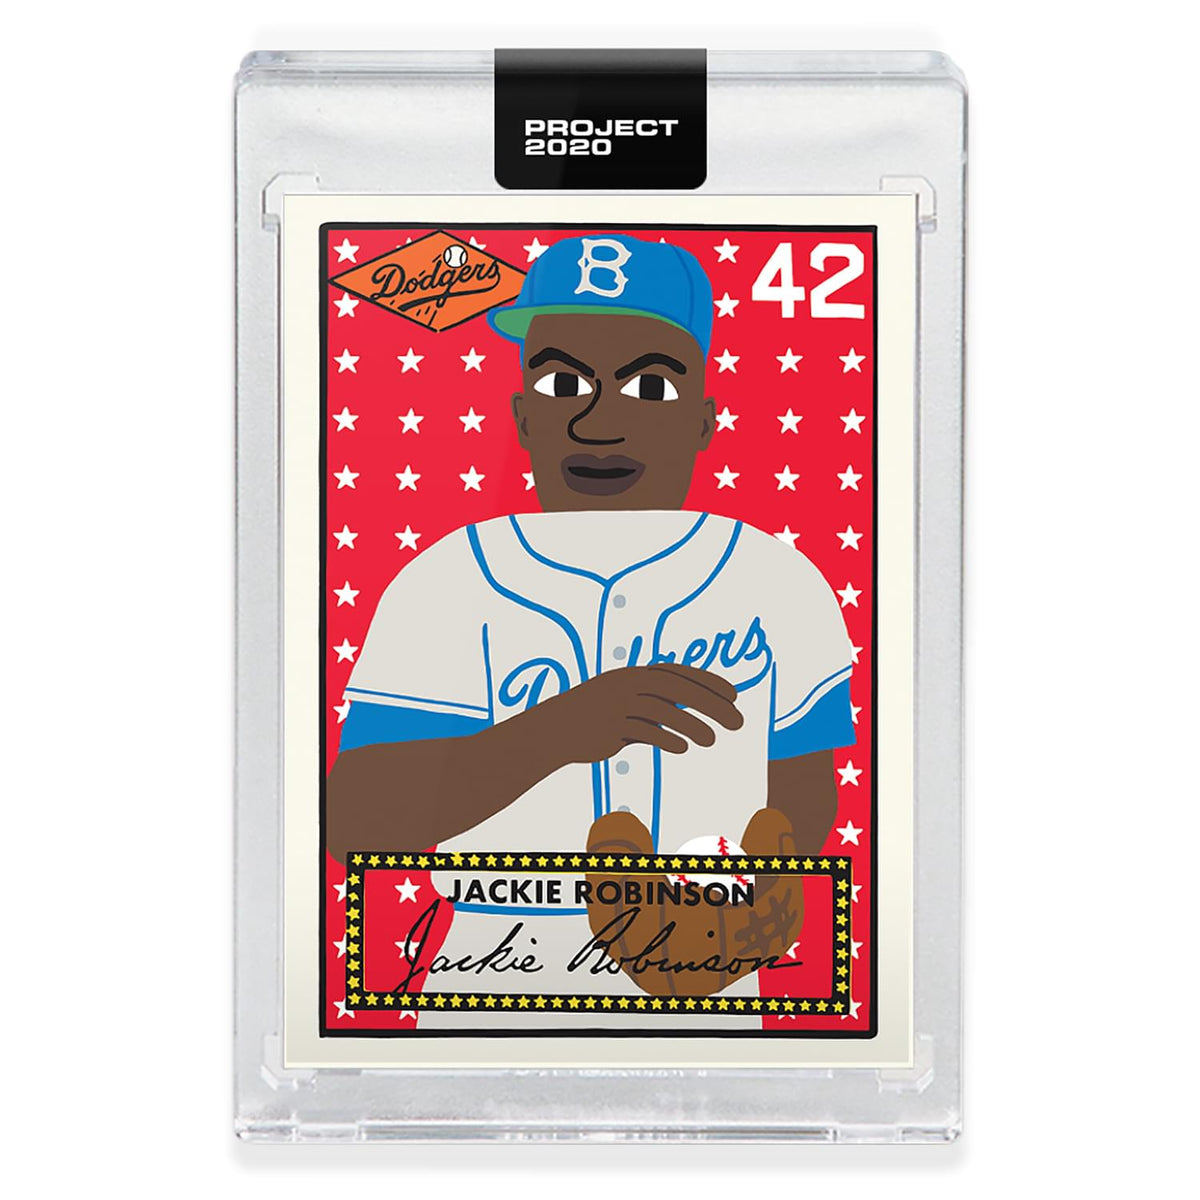 Topps PROJECT 2020 Card 281 - 1952 Jackie Robinson by Keith Shore